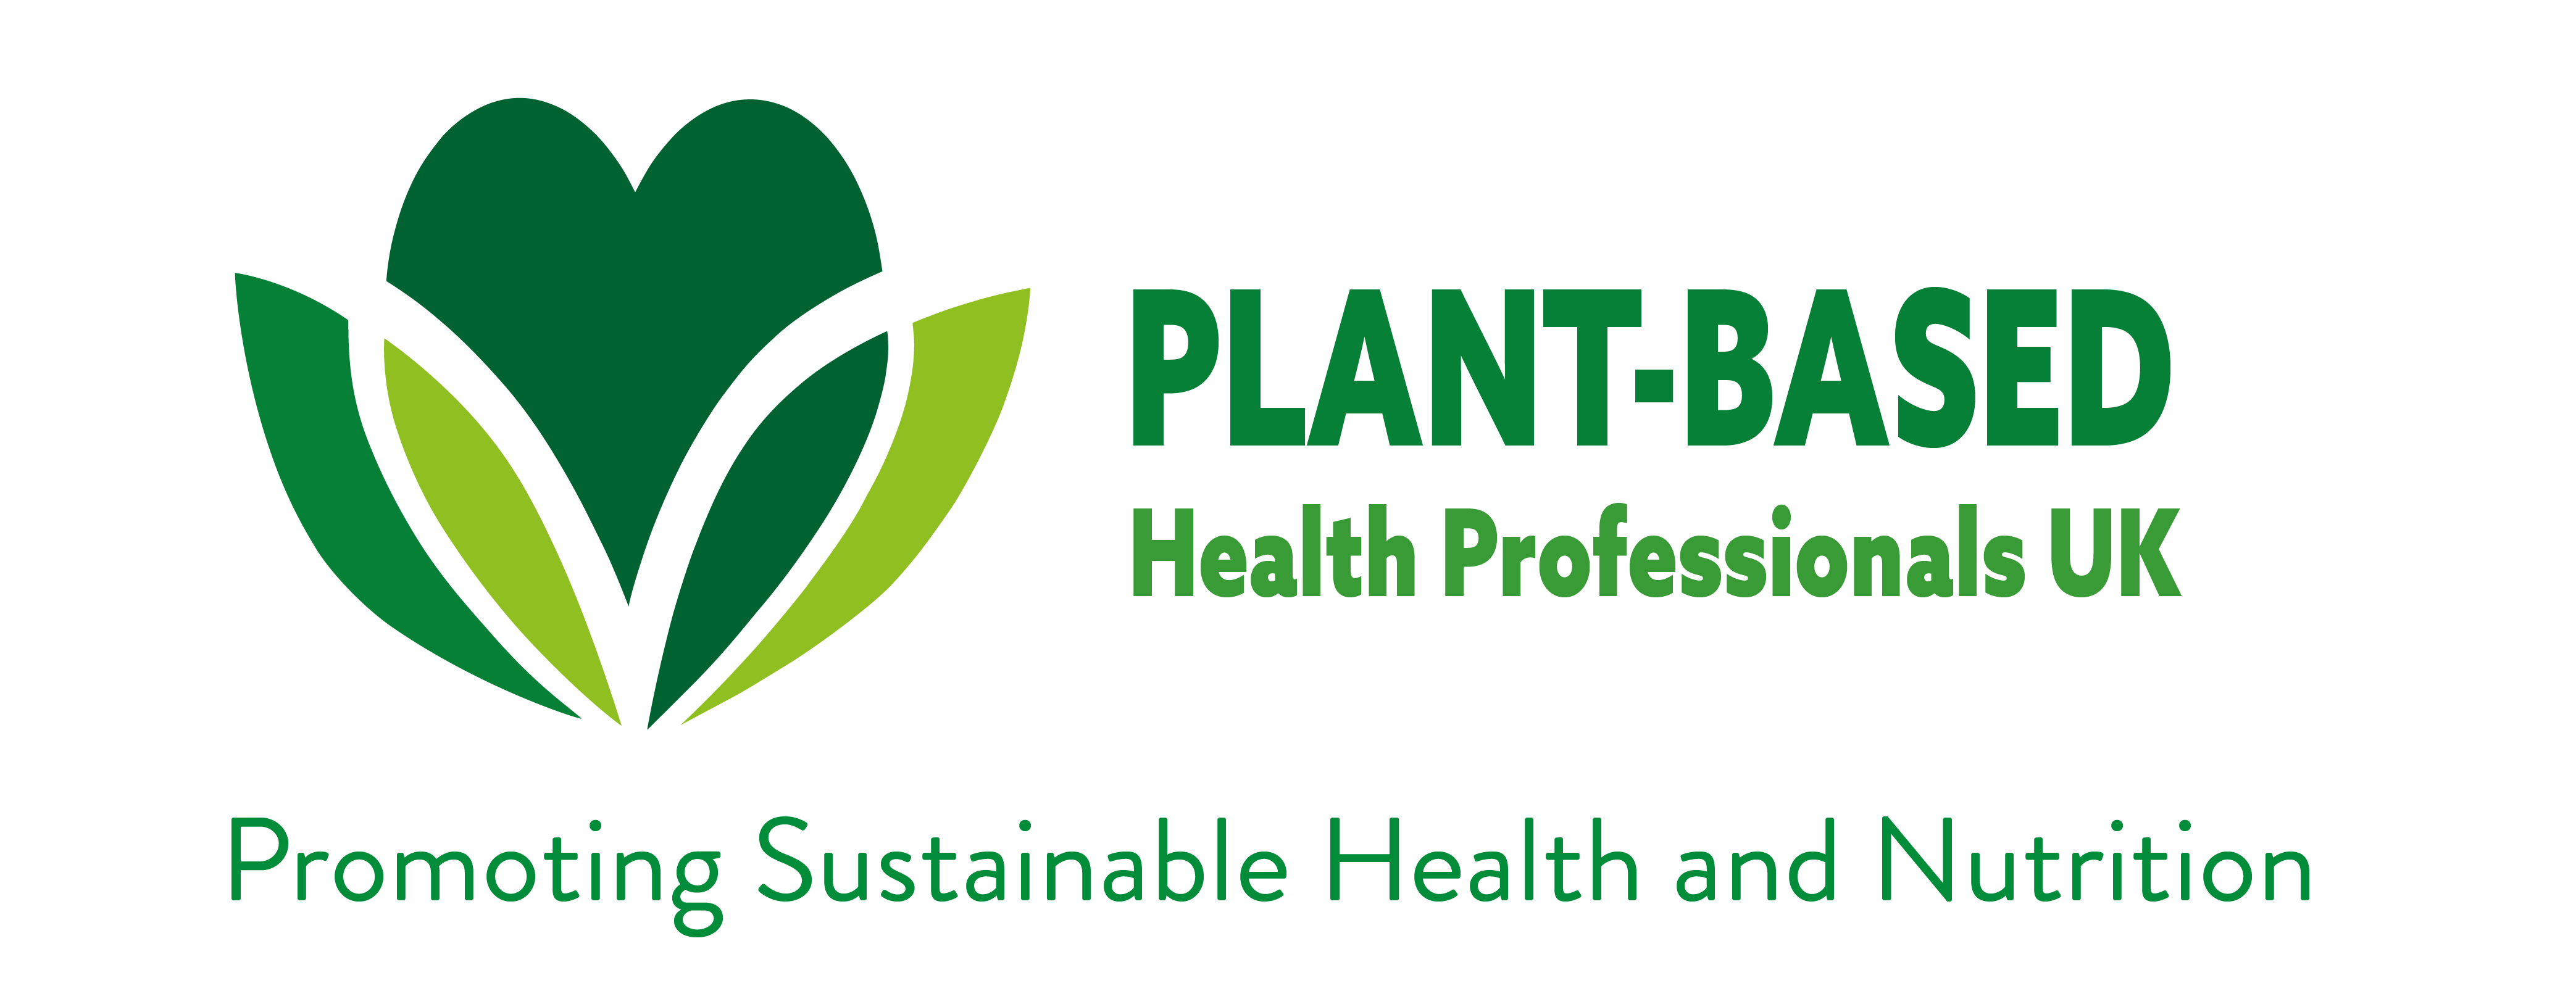 Supporter | Planted-Based Health Professionals UK